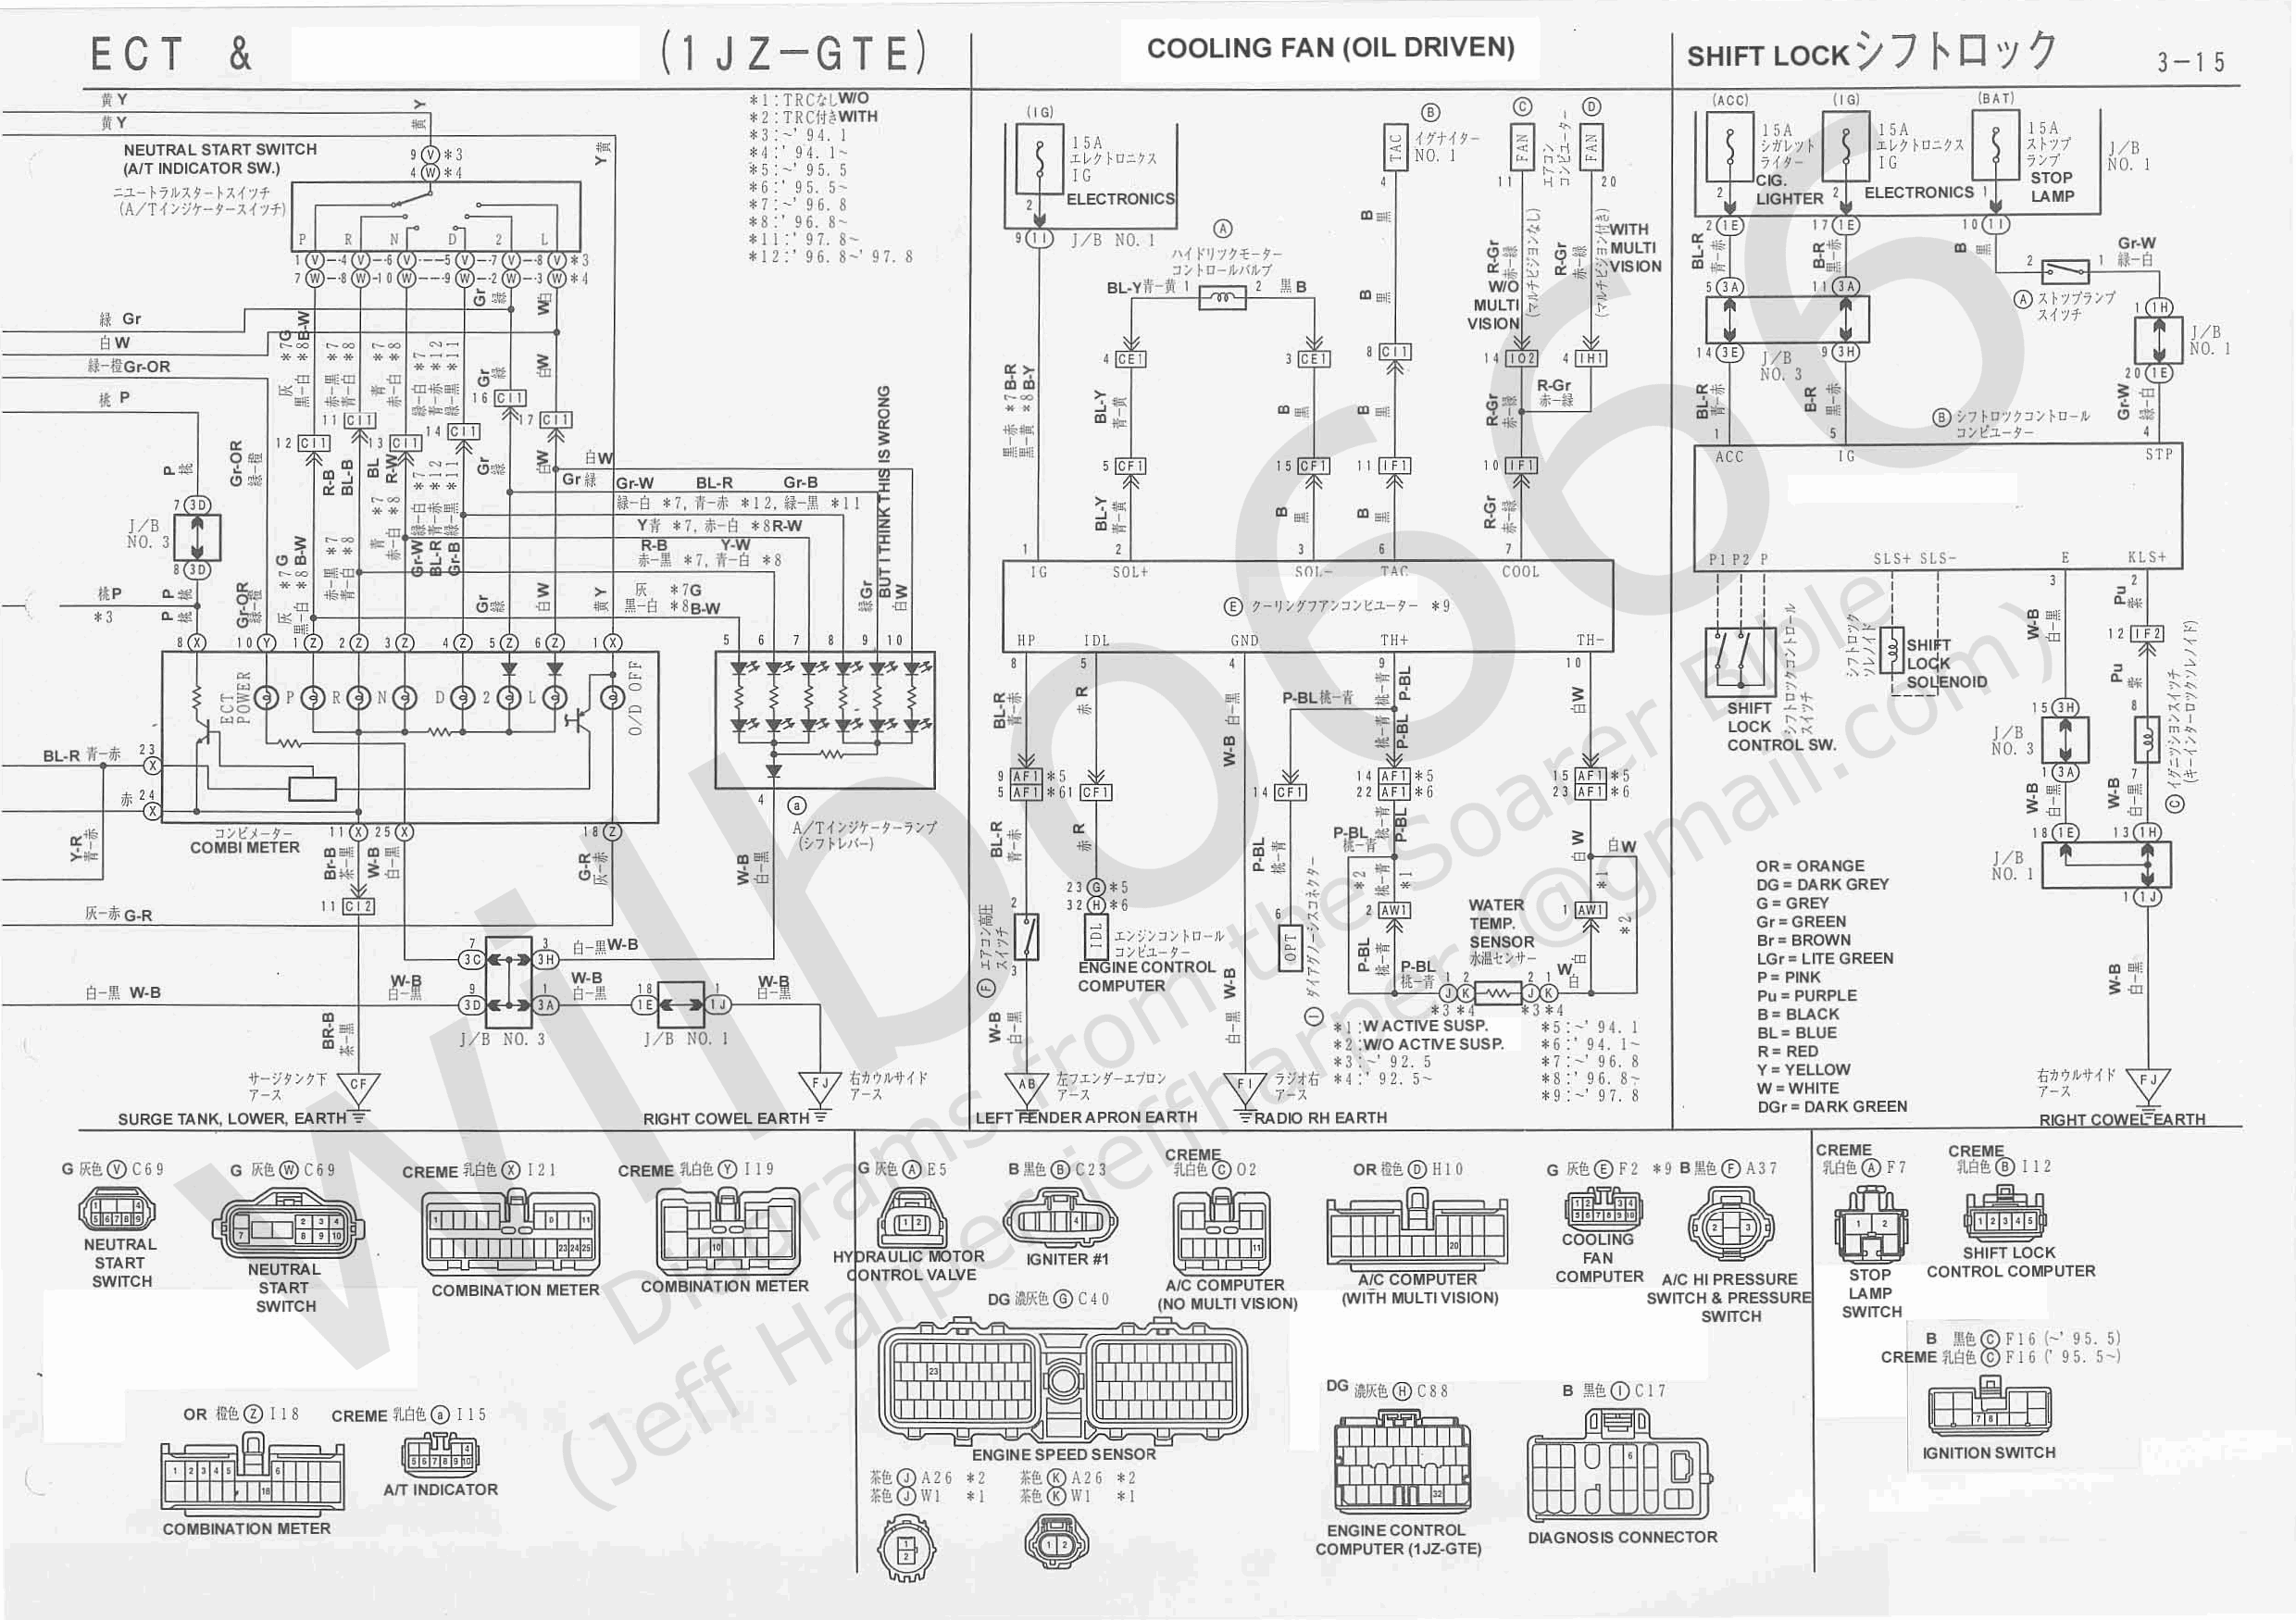 Kia Venga Wiring Diagram Georgie Boy Schematics Cruise Master Trusted Diagrams Challenger 28